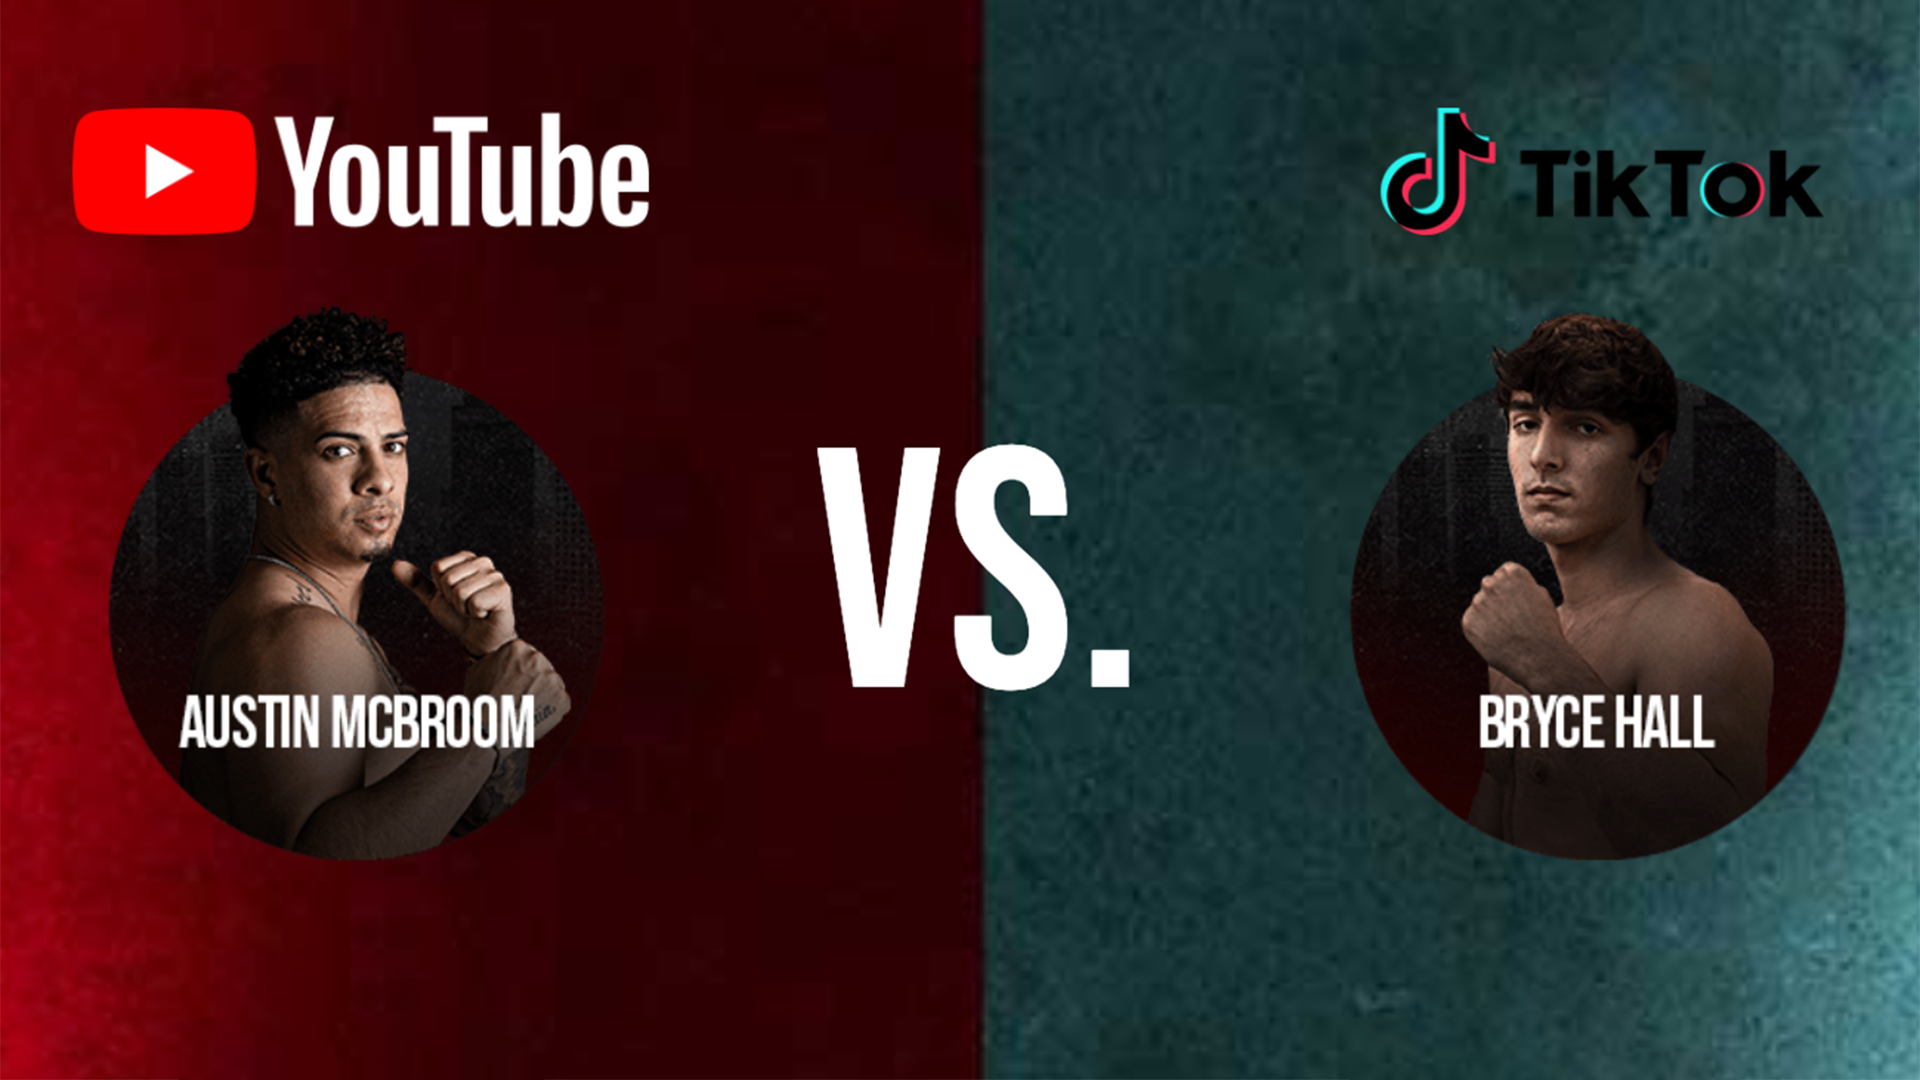 YouTube vs. TikTok: How much will Austin McBroom and Bryce Hall make in boxing exhibition?